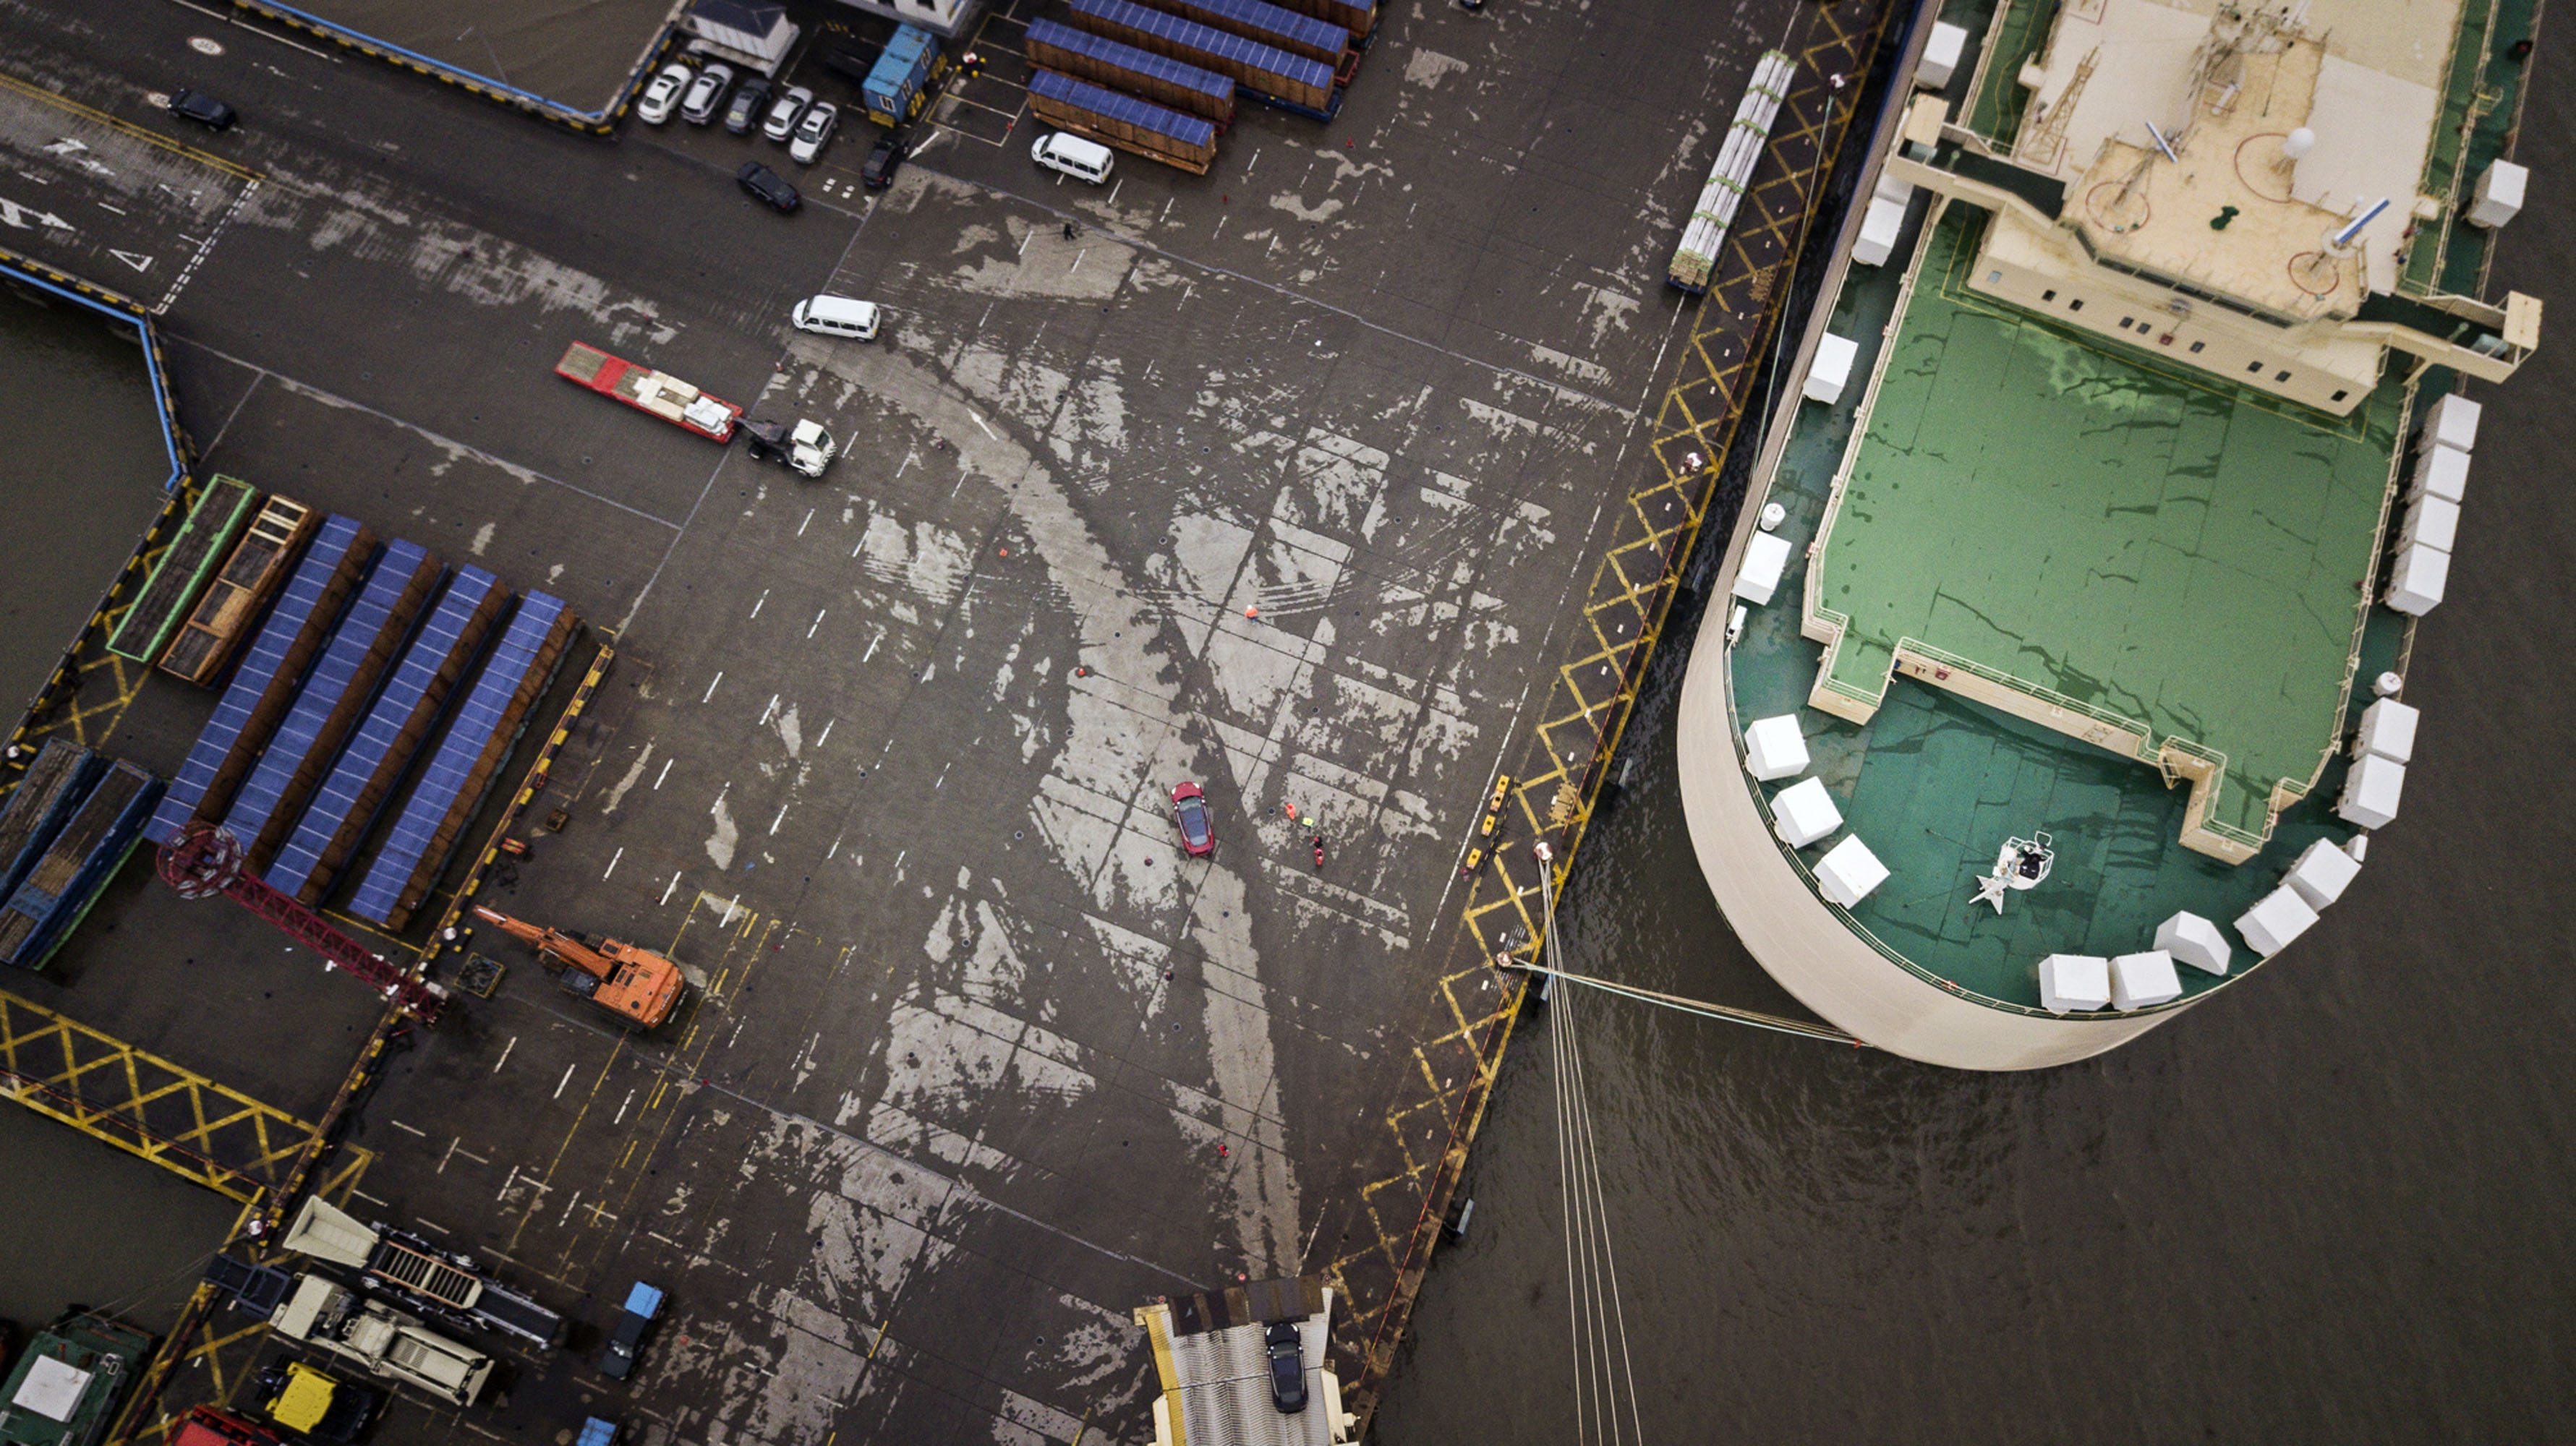 A Tesla Inc. Model 3 electric vehicle, center, travels through a port after being driven off the Morning Cindy vehicle carrier in this aerial photograph taken in Shanghai, China.